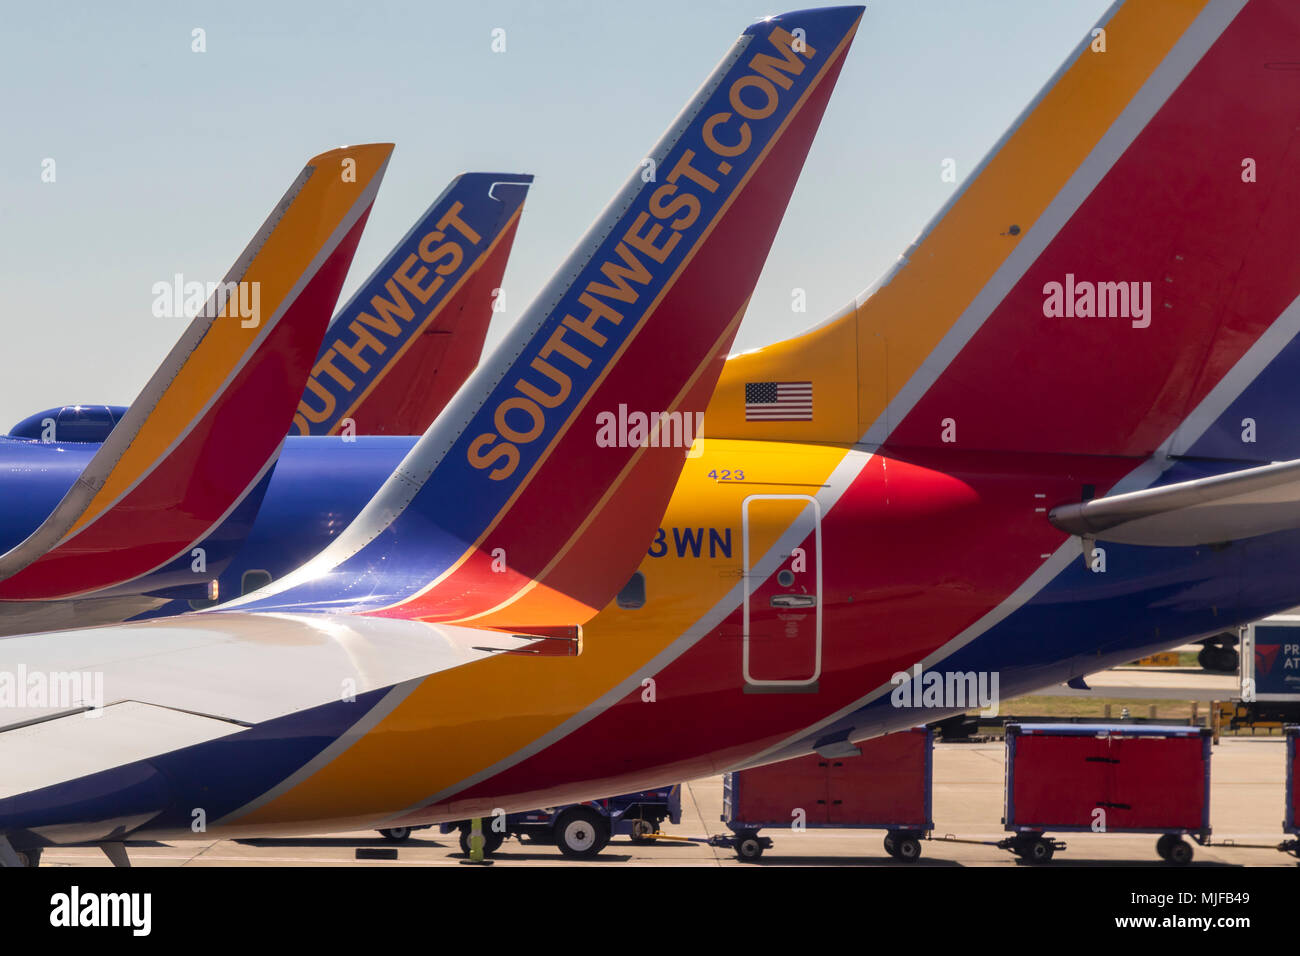 Atlanta, Georgia - Southwest Airlines jets on the ground at the Atlanta airport. - Stock Image